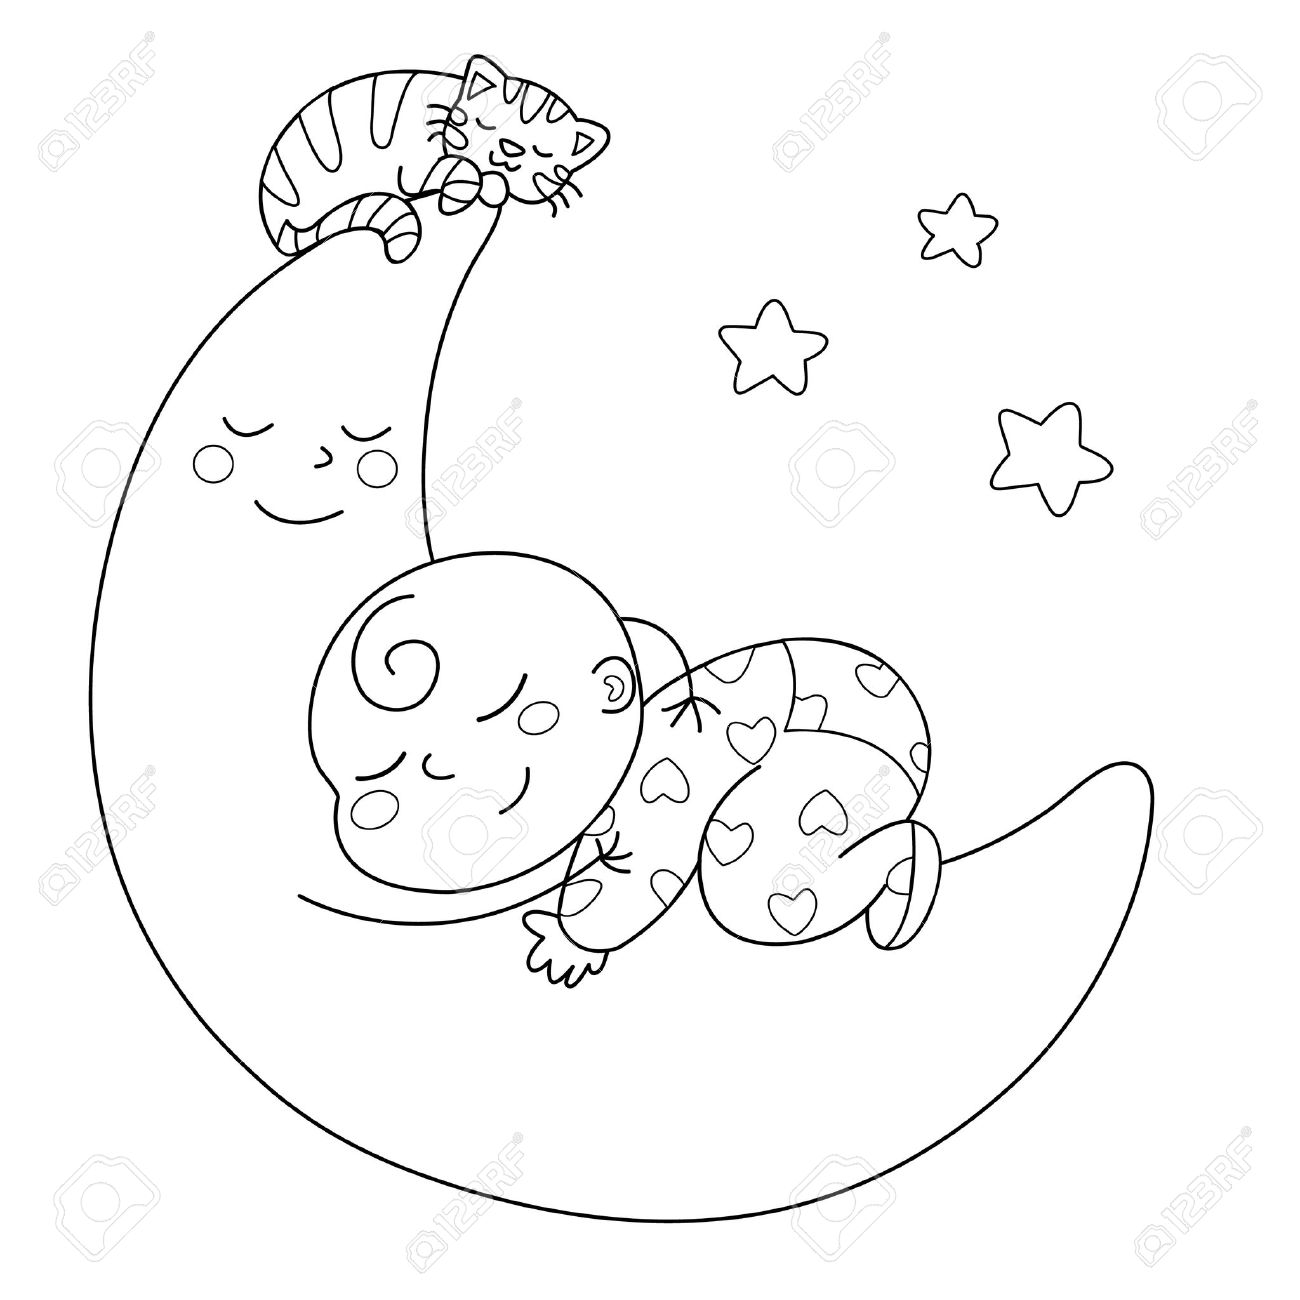 Baby Sleeping Clipart Black And White